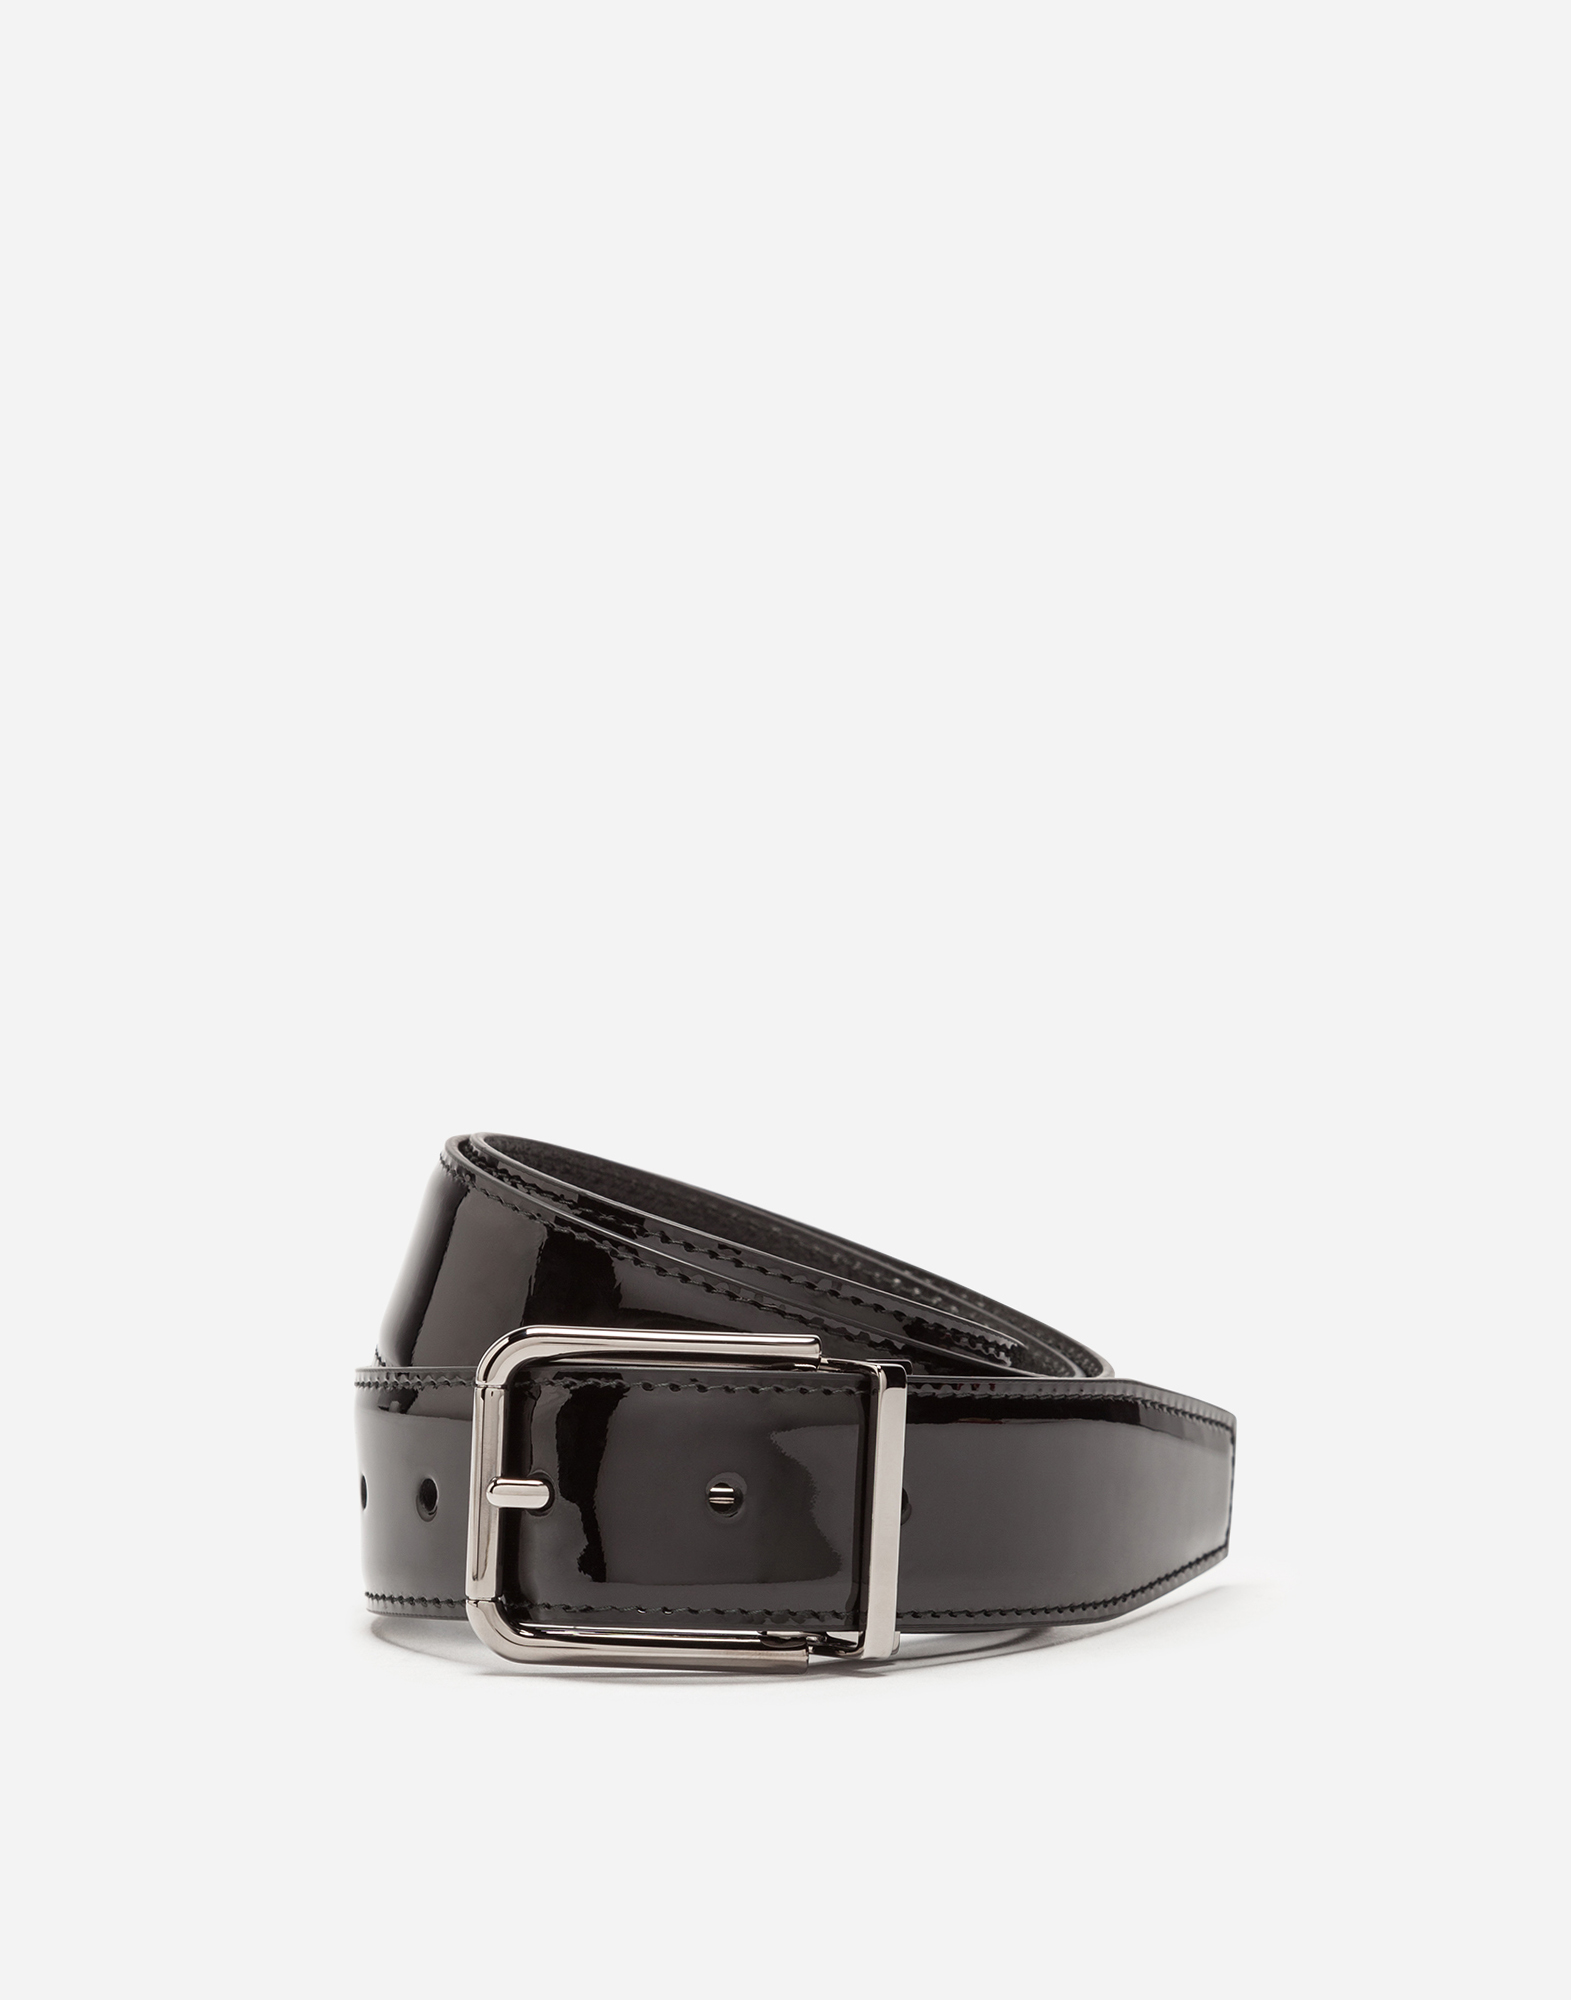 Dolce&Gabbana PATENT LEATHER BELT